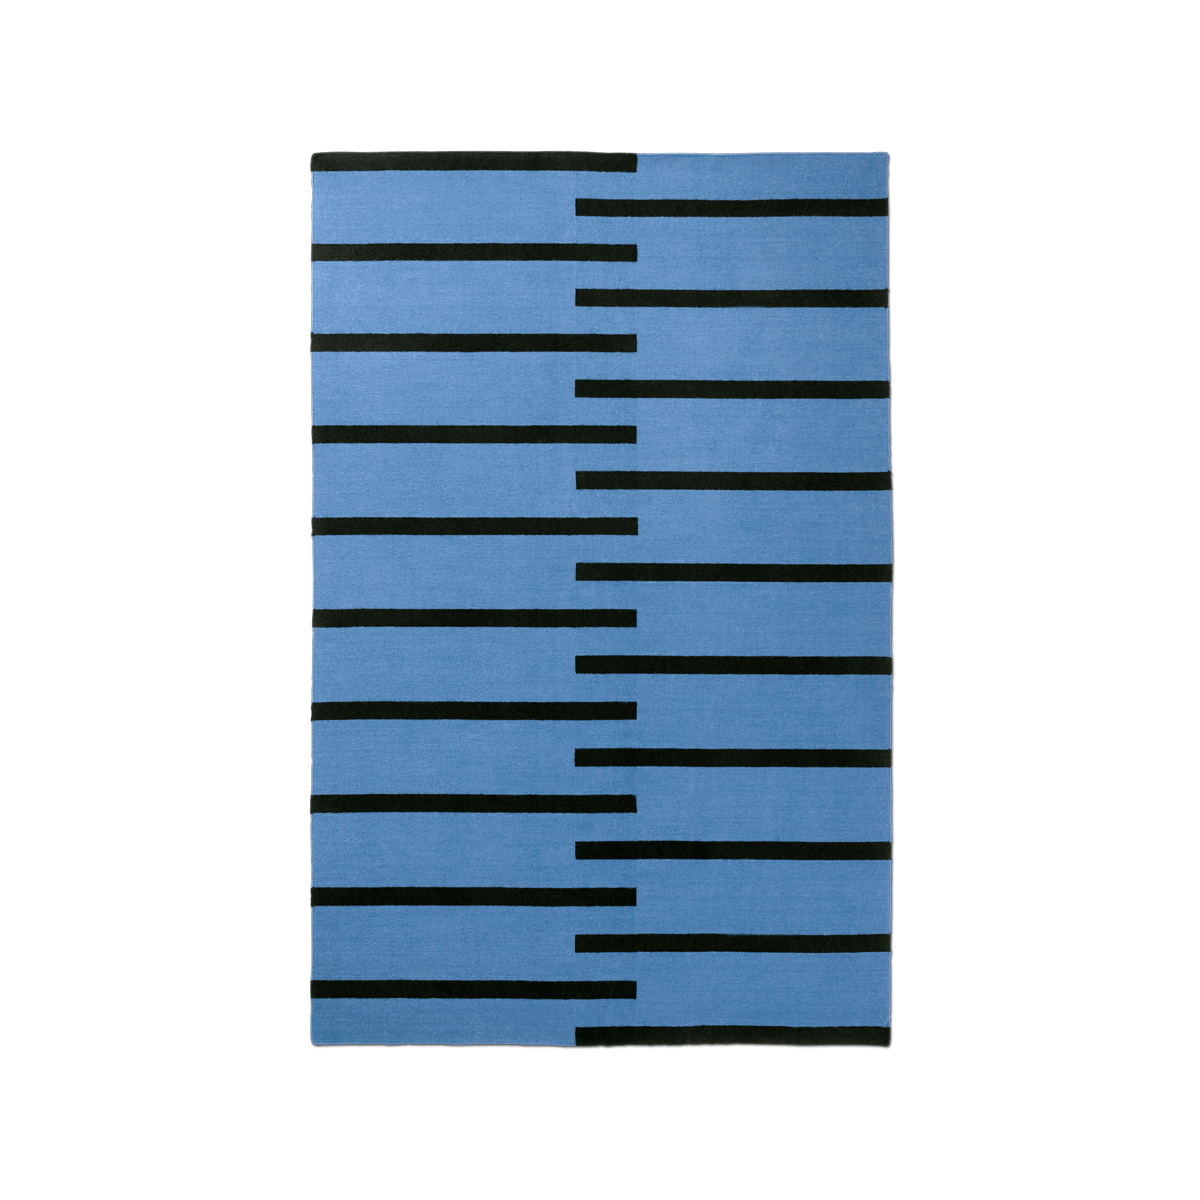 Product image of the flatweave rug Tiger in the color Blue. The rug has thick, graphic black lines as a pattern.